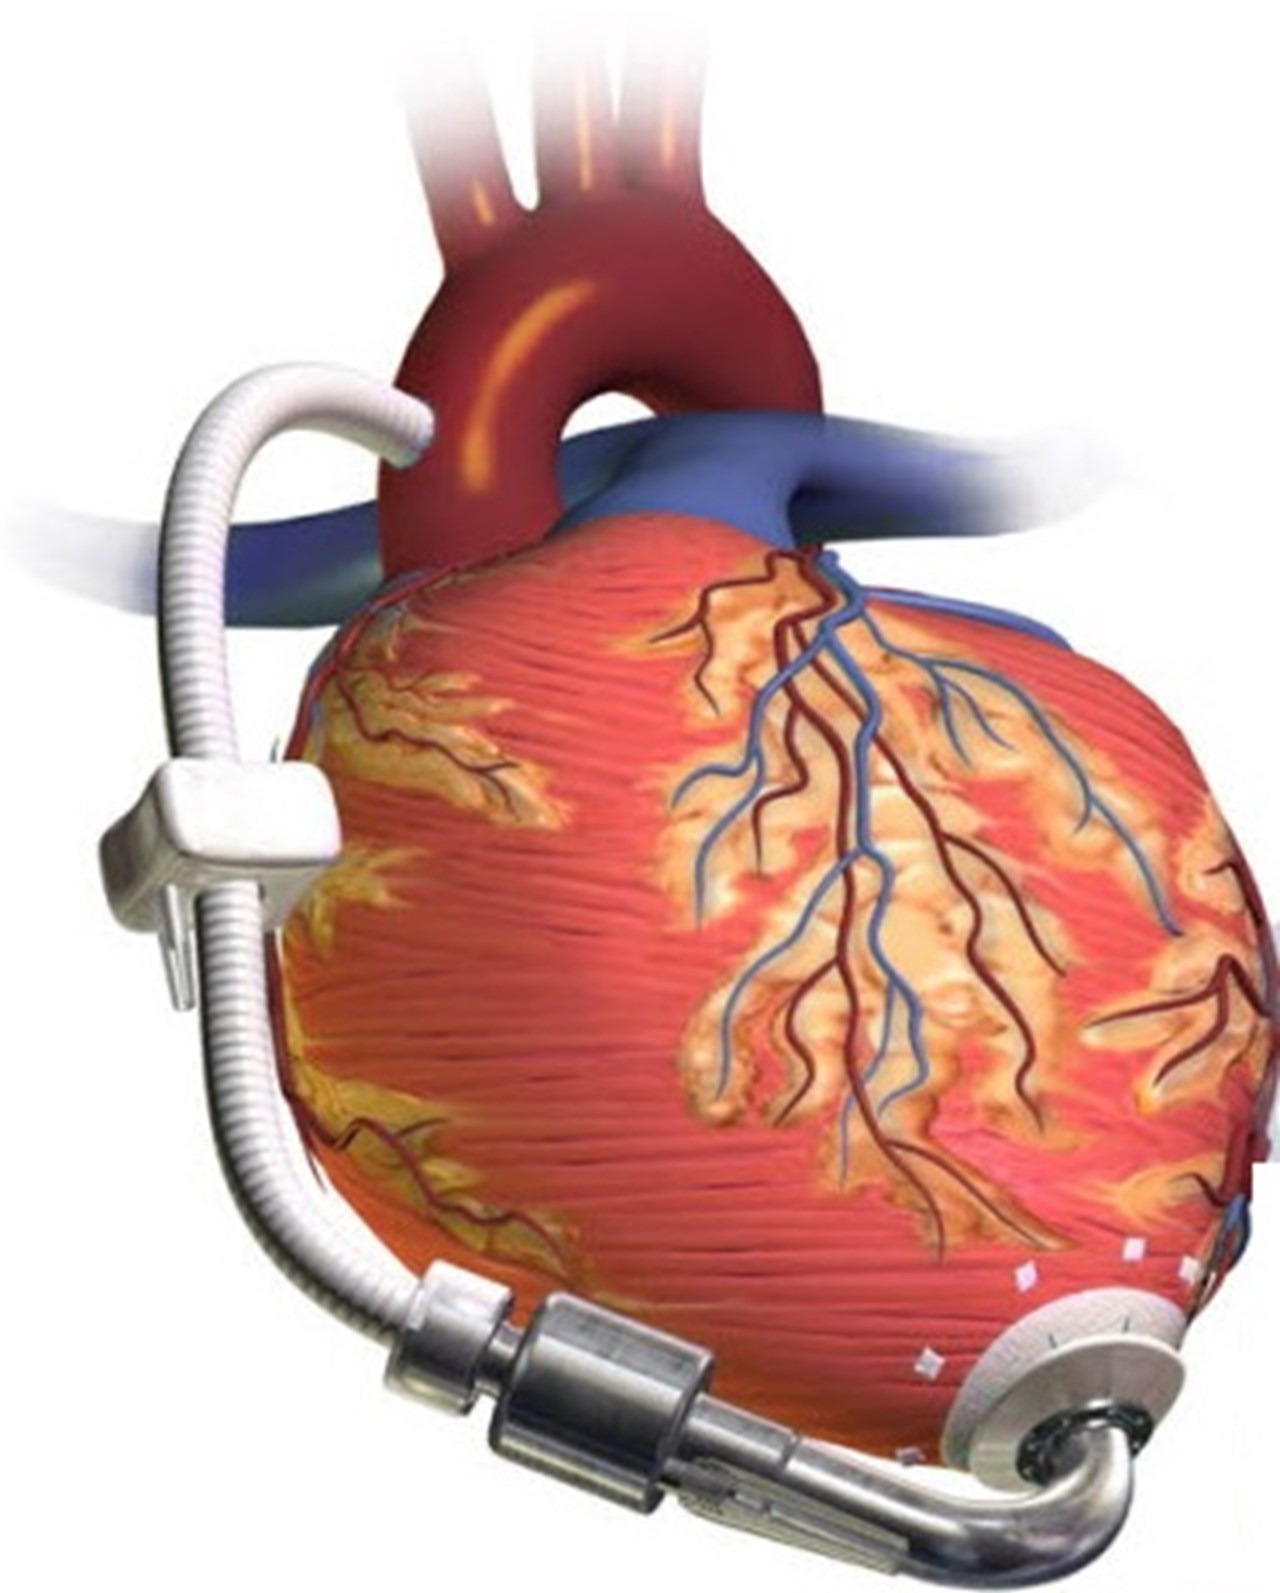 700 patients for the new heart in last 10 years